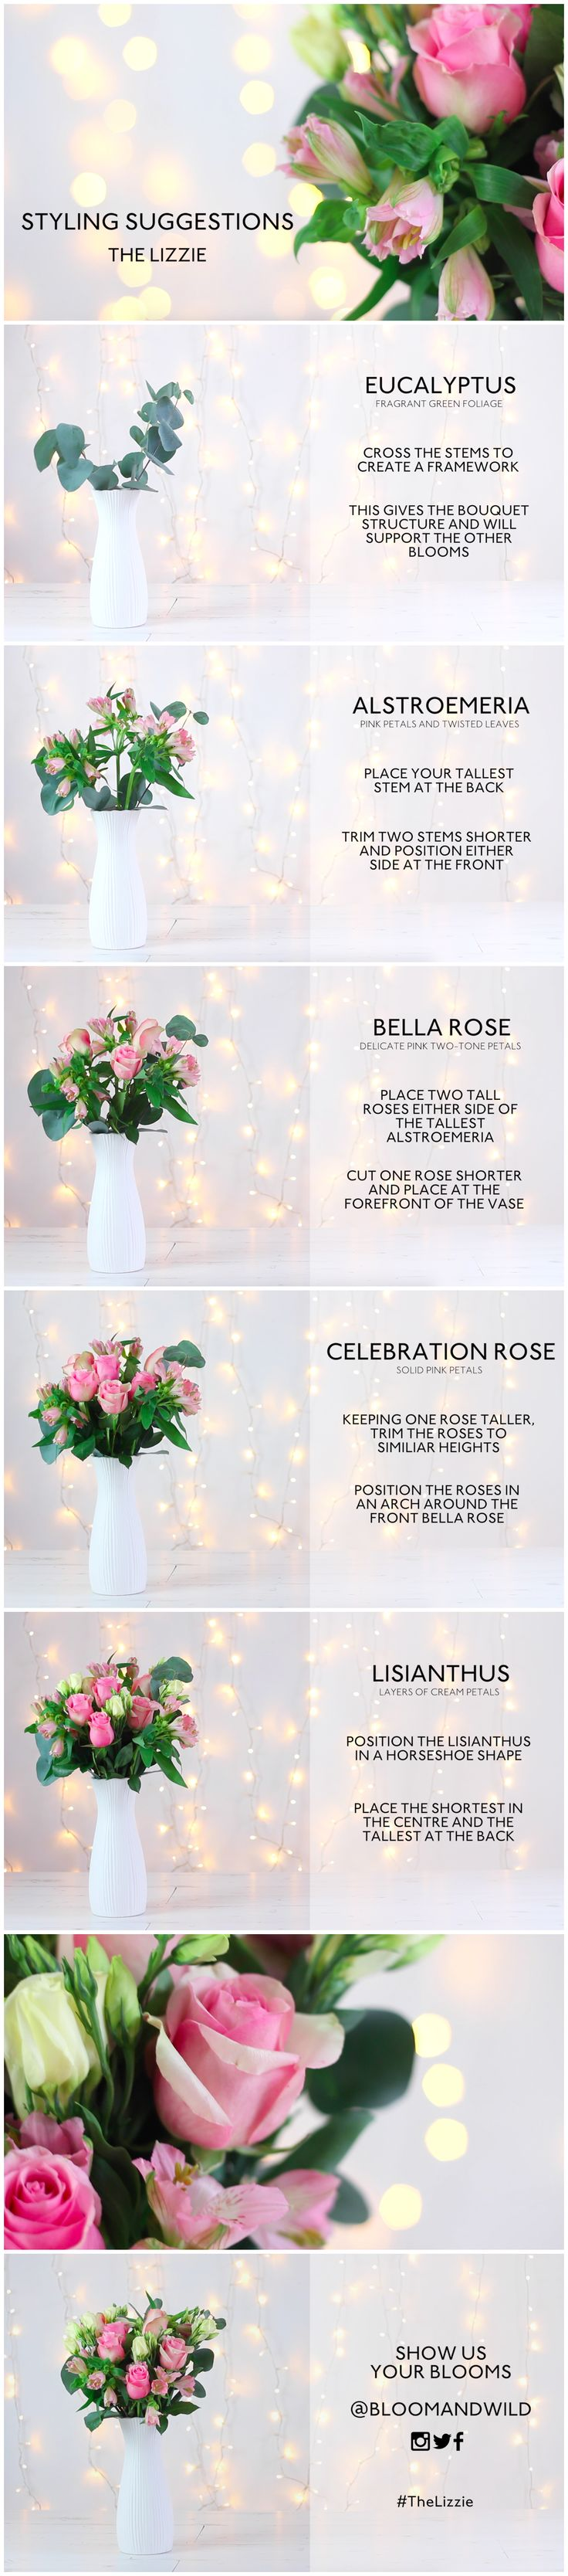 Arrangement of The Lizzie Bloom & Wild letterbox flower bouquet. How to arrange flowers. Tutorial guide. Featuring eucalyptus, alstroemeria, pink, bella rose, celebration roses and lisianthus